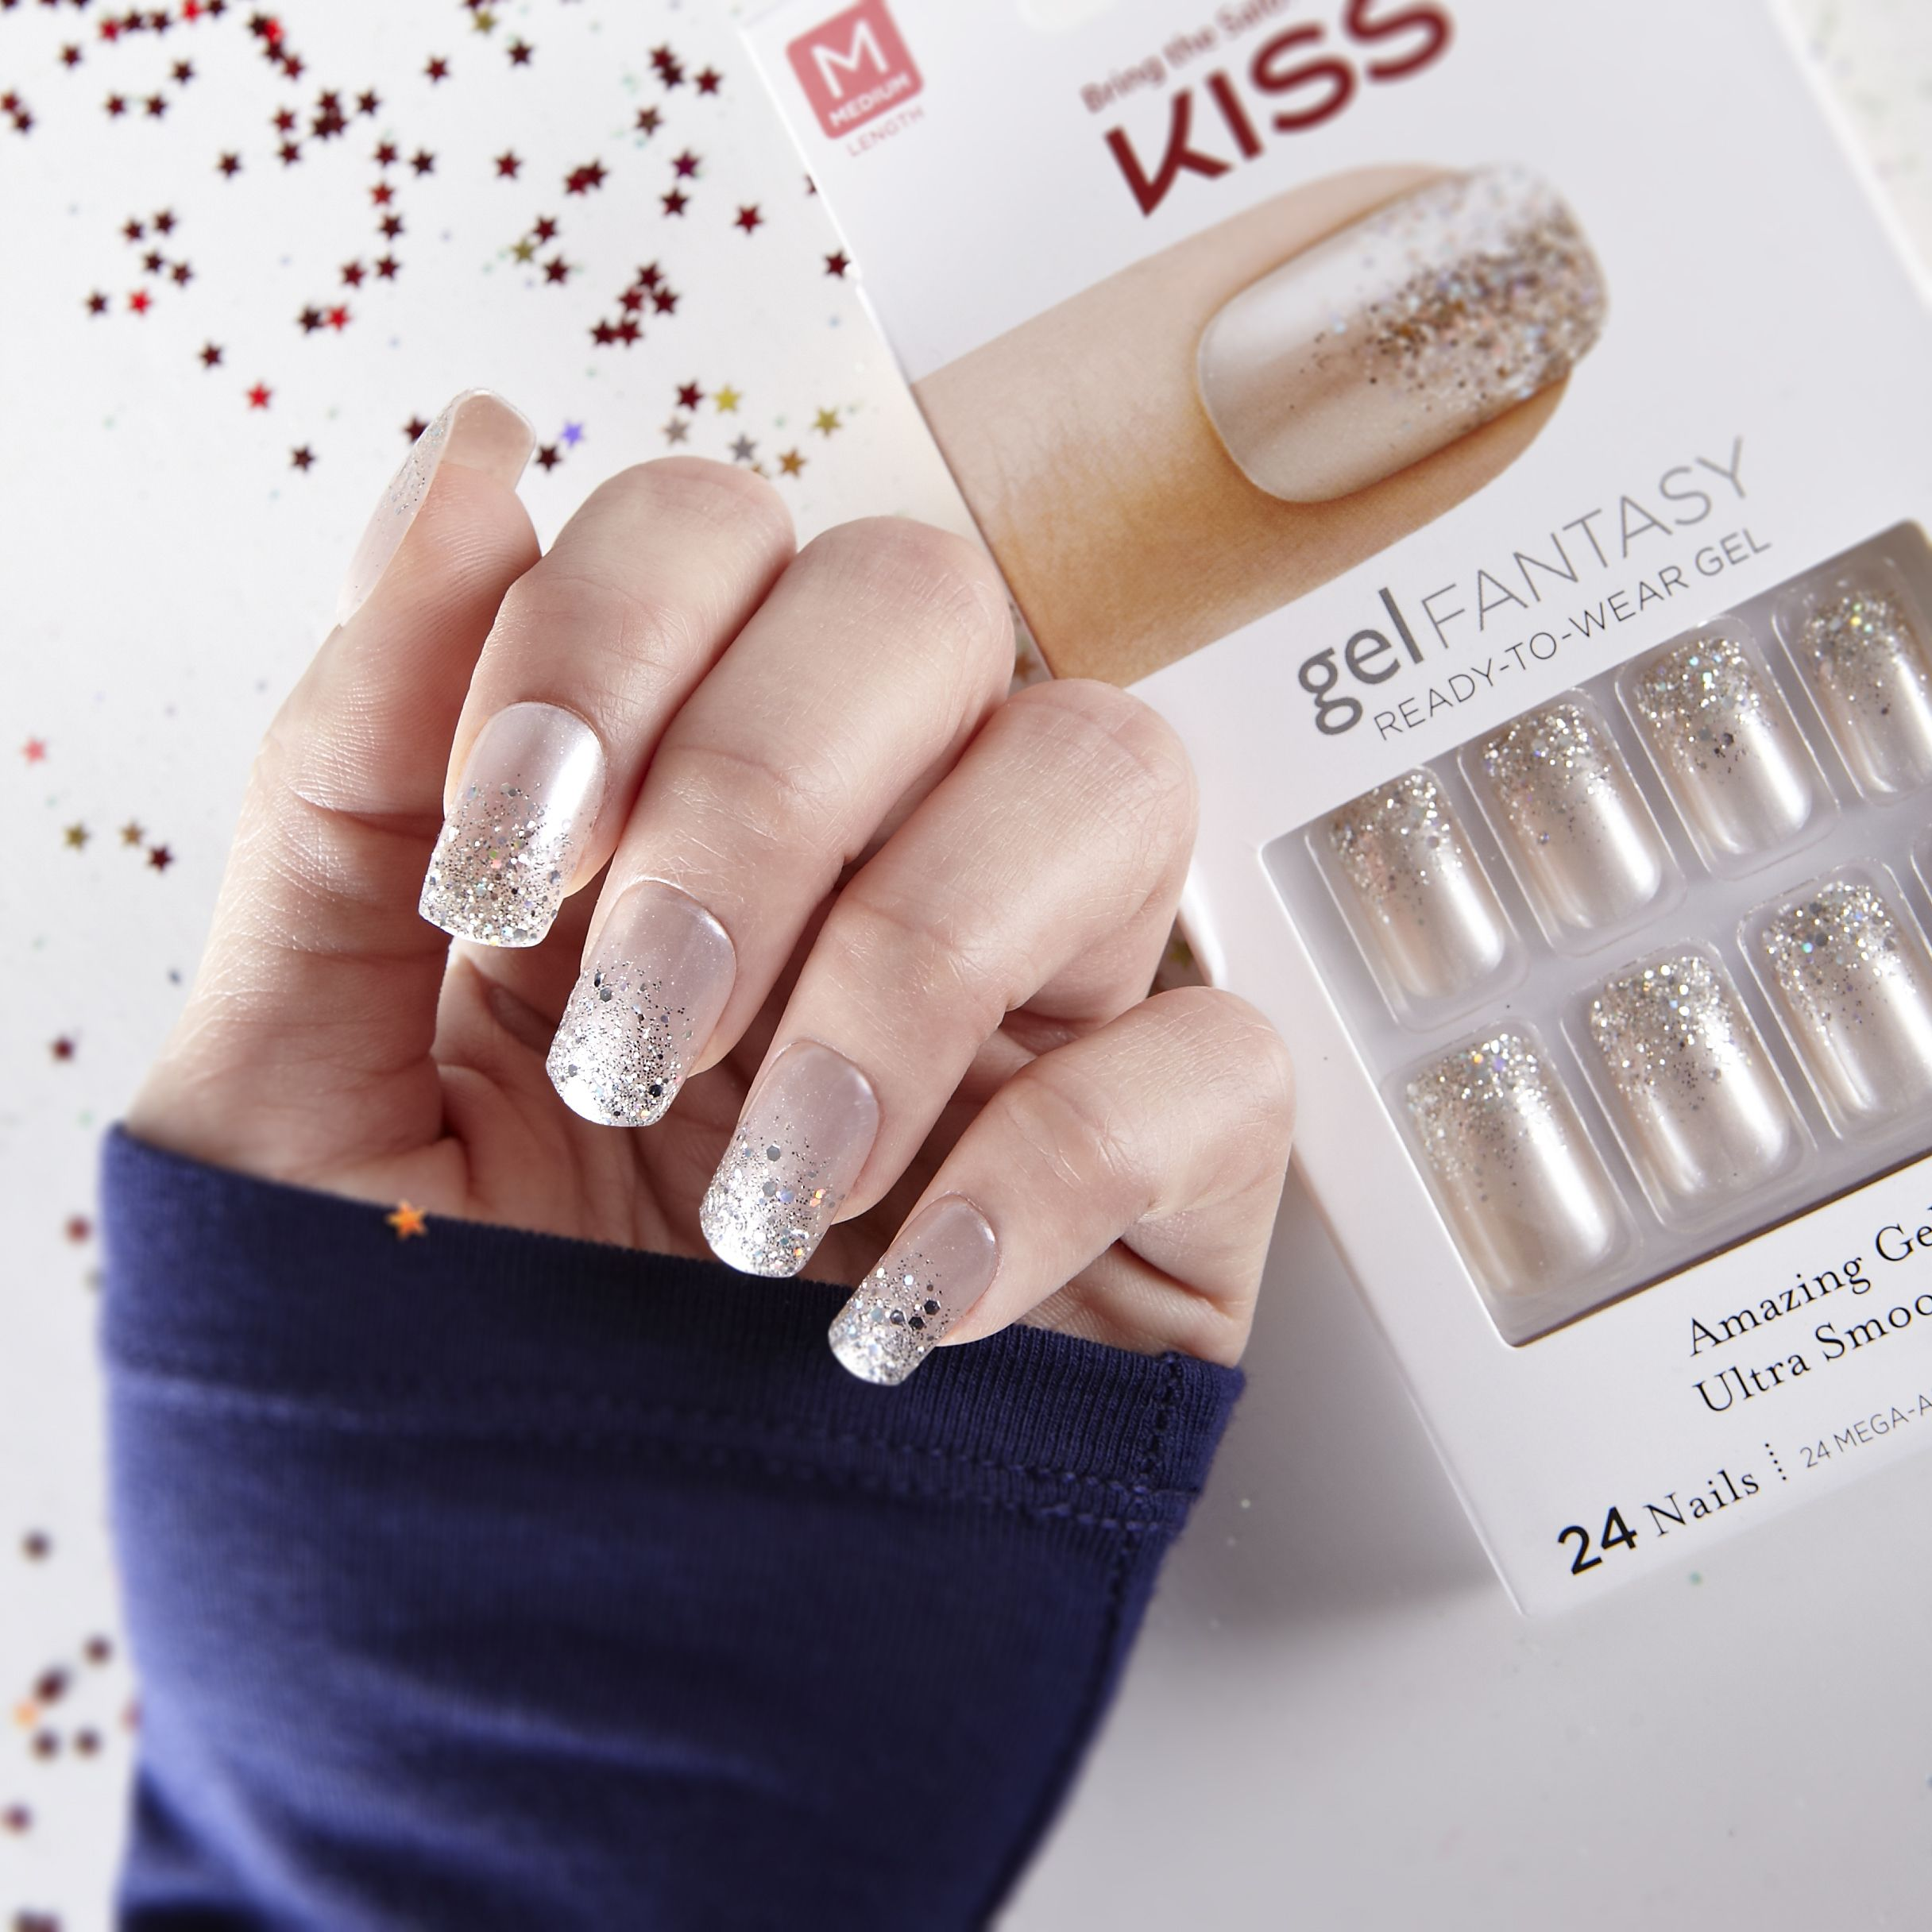 Turn on the sparkle shine with kiss holiday nails available at turn on the sparkle shine with kiss holiday nails available at select walgreens prinsesfo Images